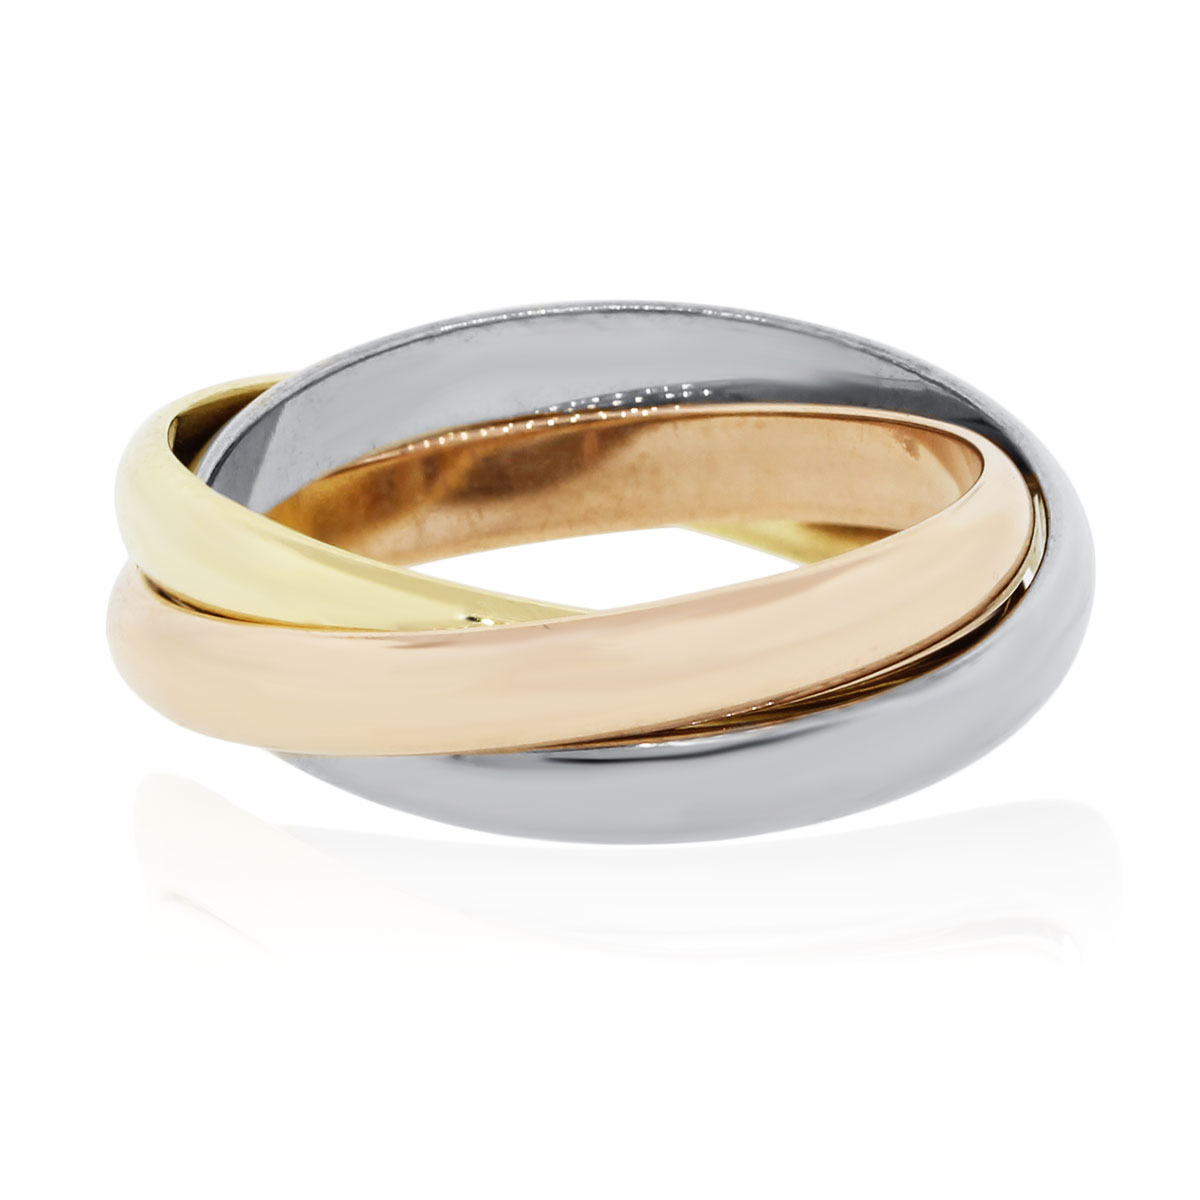 Cartier Trinity large model ring in 3 golds